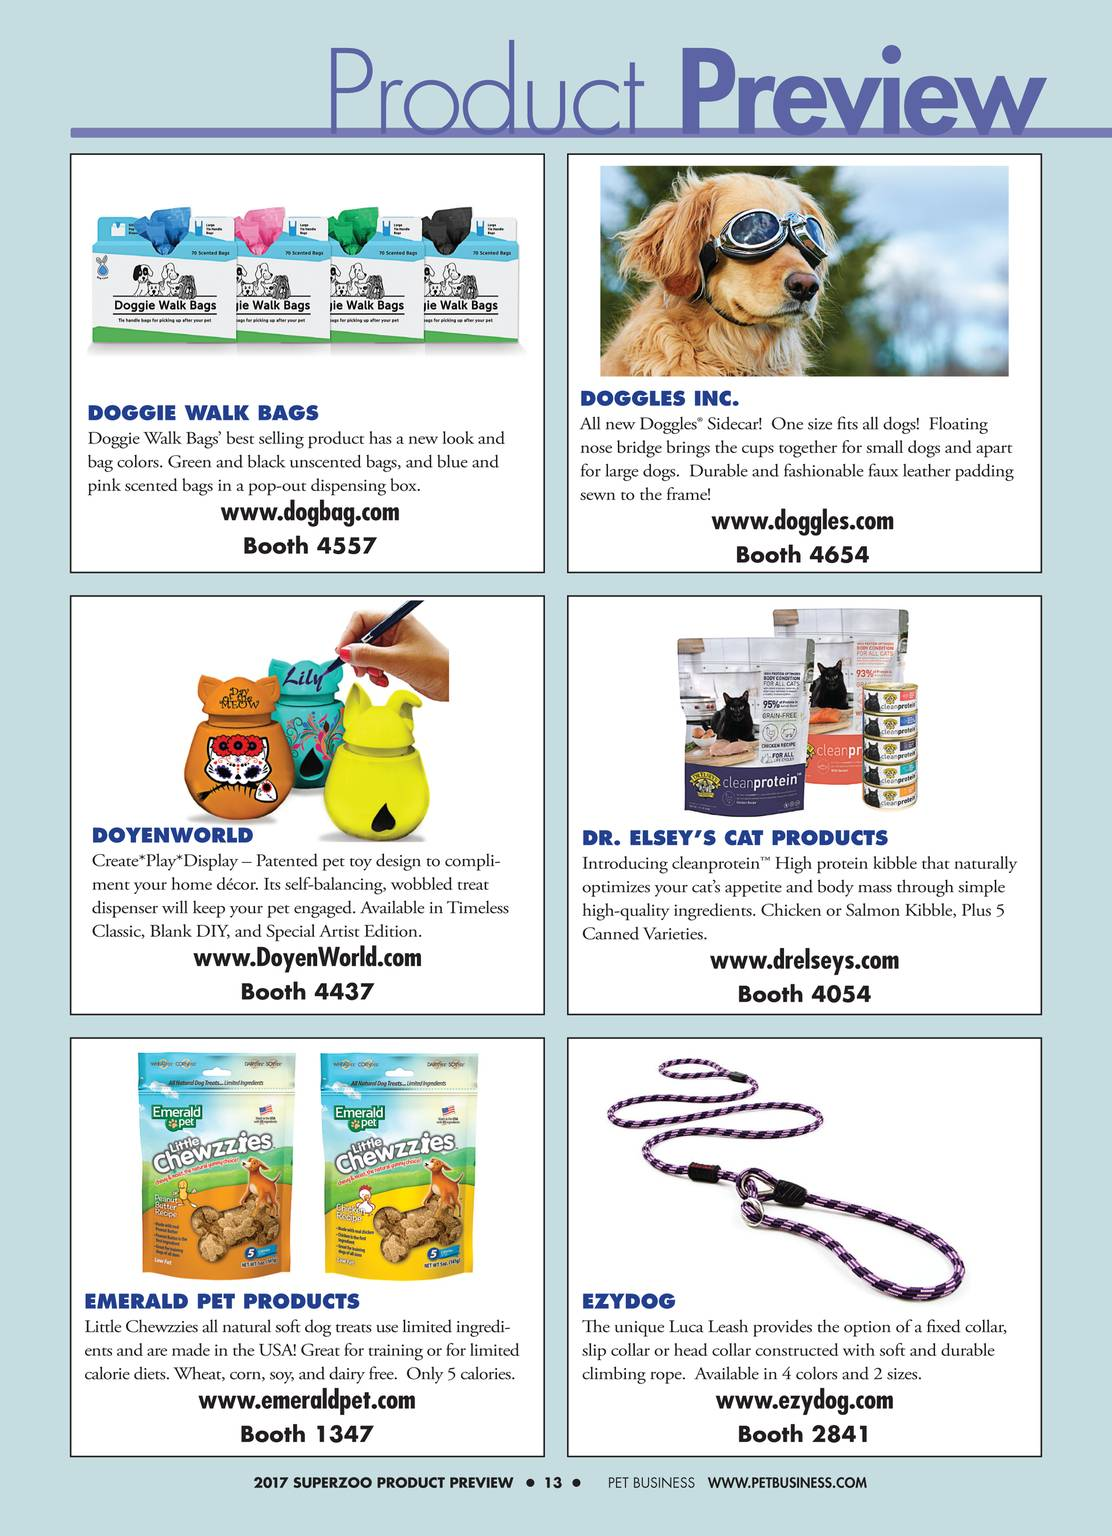 001d85e728 Pet Business - SuperZoo Show Preview 2017 - page 13